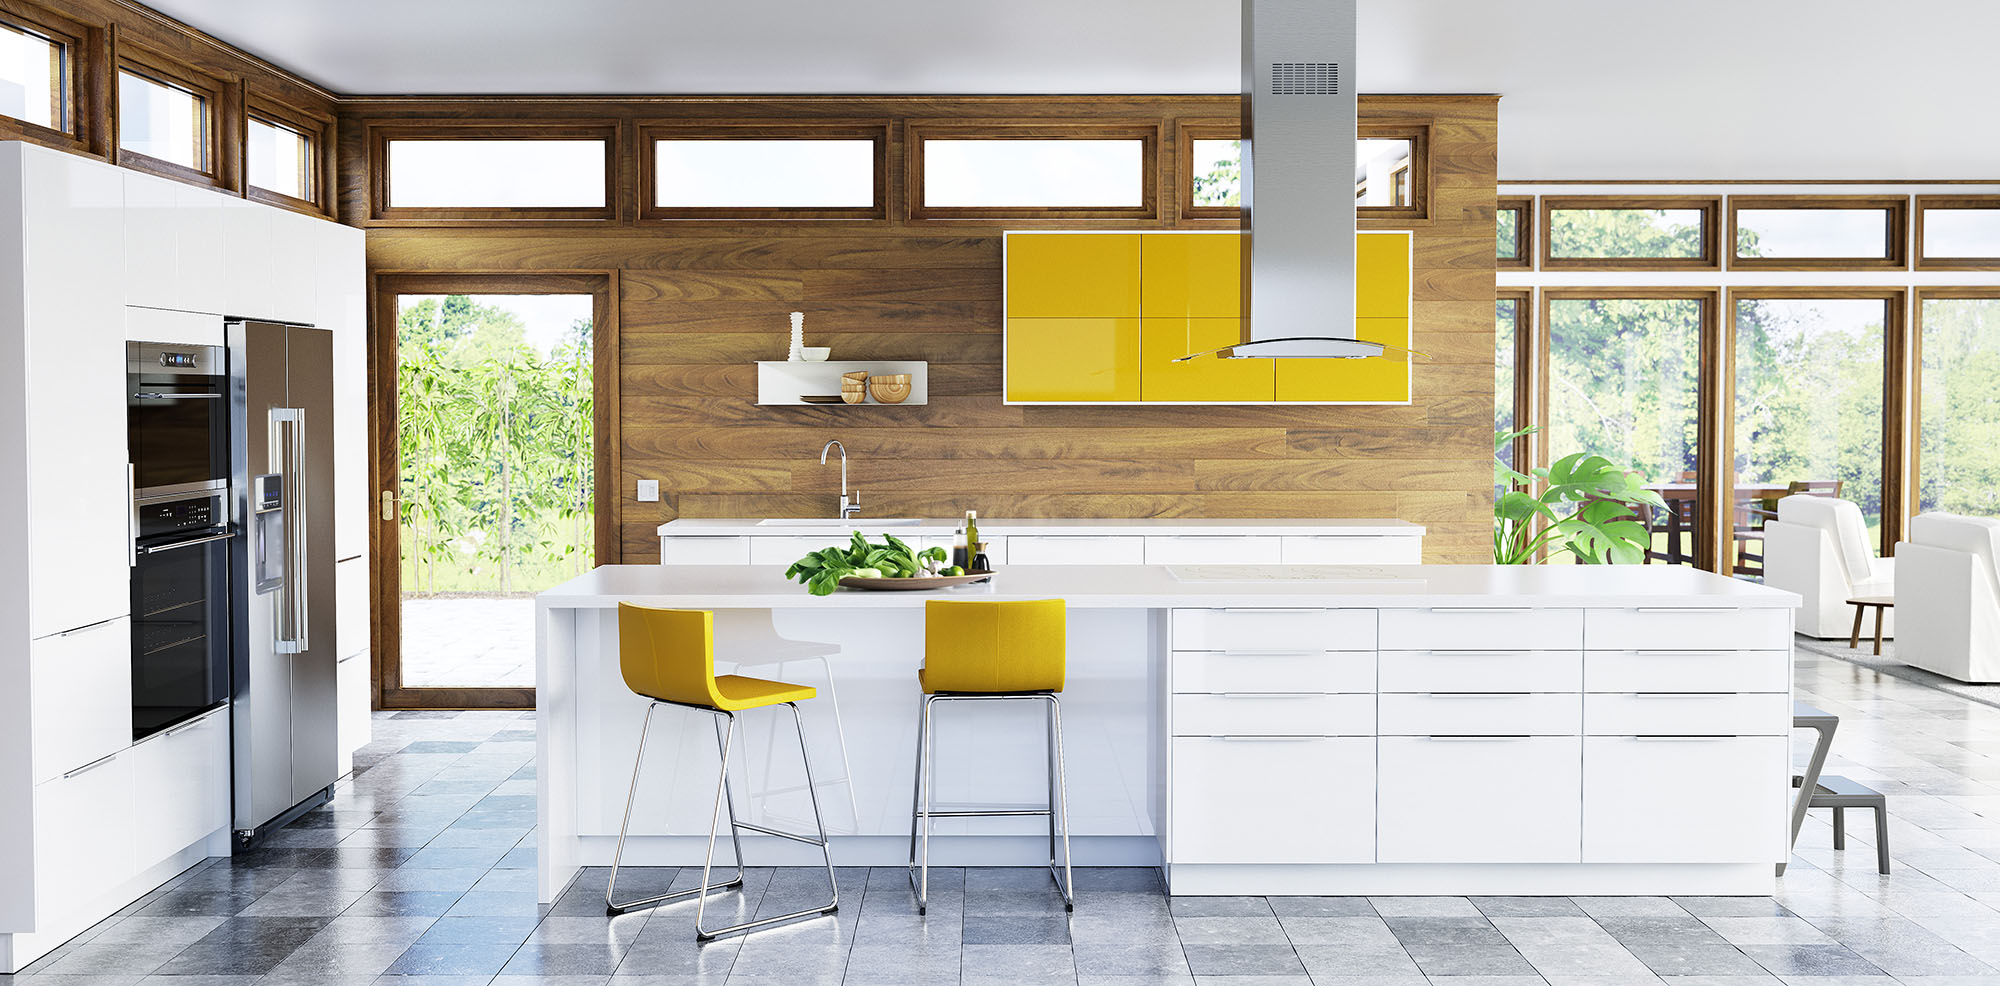 Beau New IKEA SEKTION Kitchen RINGHULT High Gloss White And JÄRSTA High Gloss  Yellow (CNW Group. 784b4b89a76d03226013656a39dff2f4